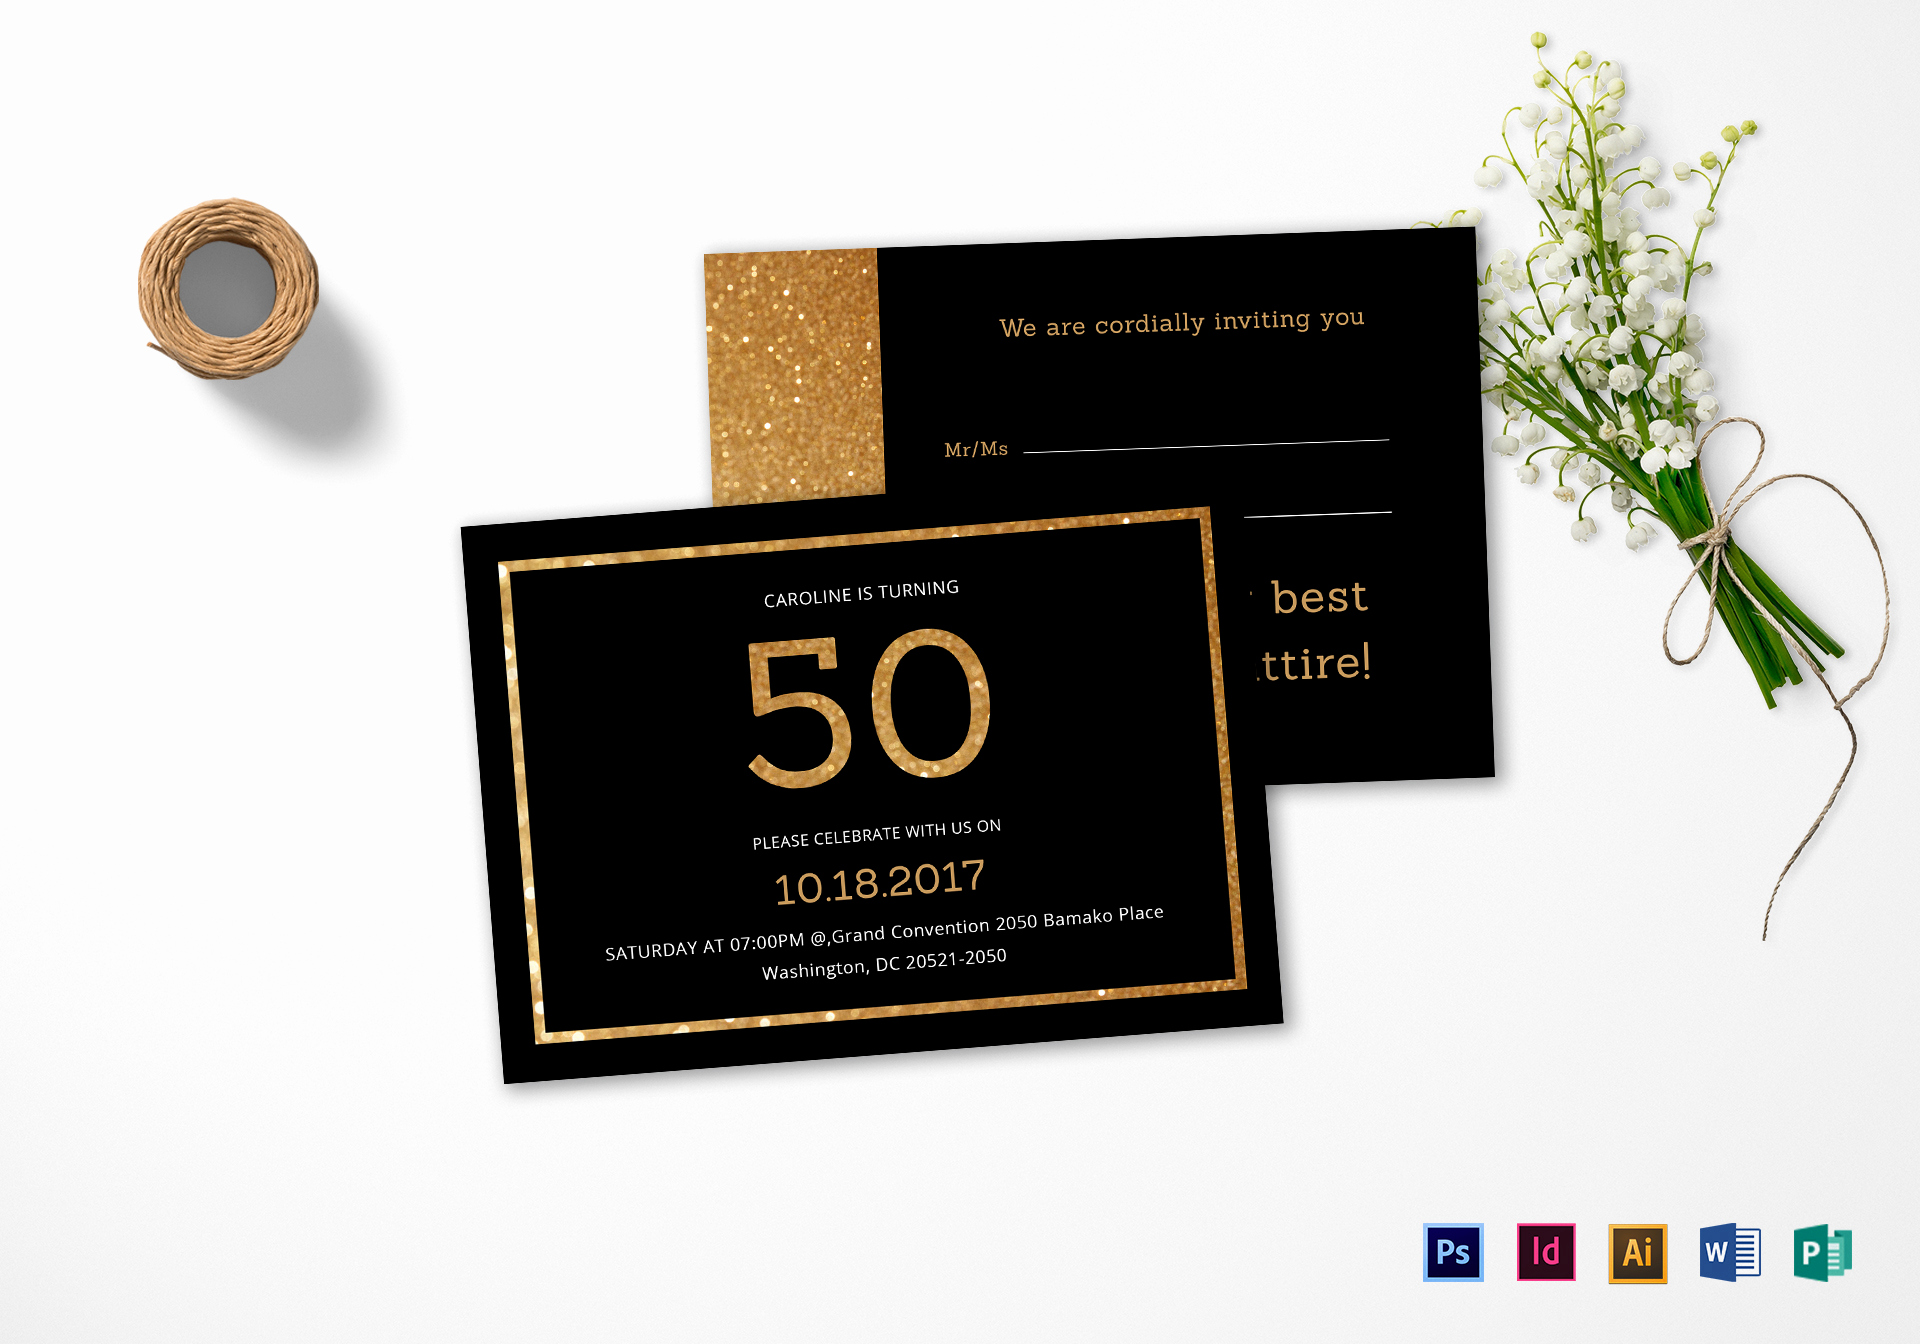 50th Birthday Invitation Card Fresh Elegant Black and Gold 50th Birthday Invitation Design